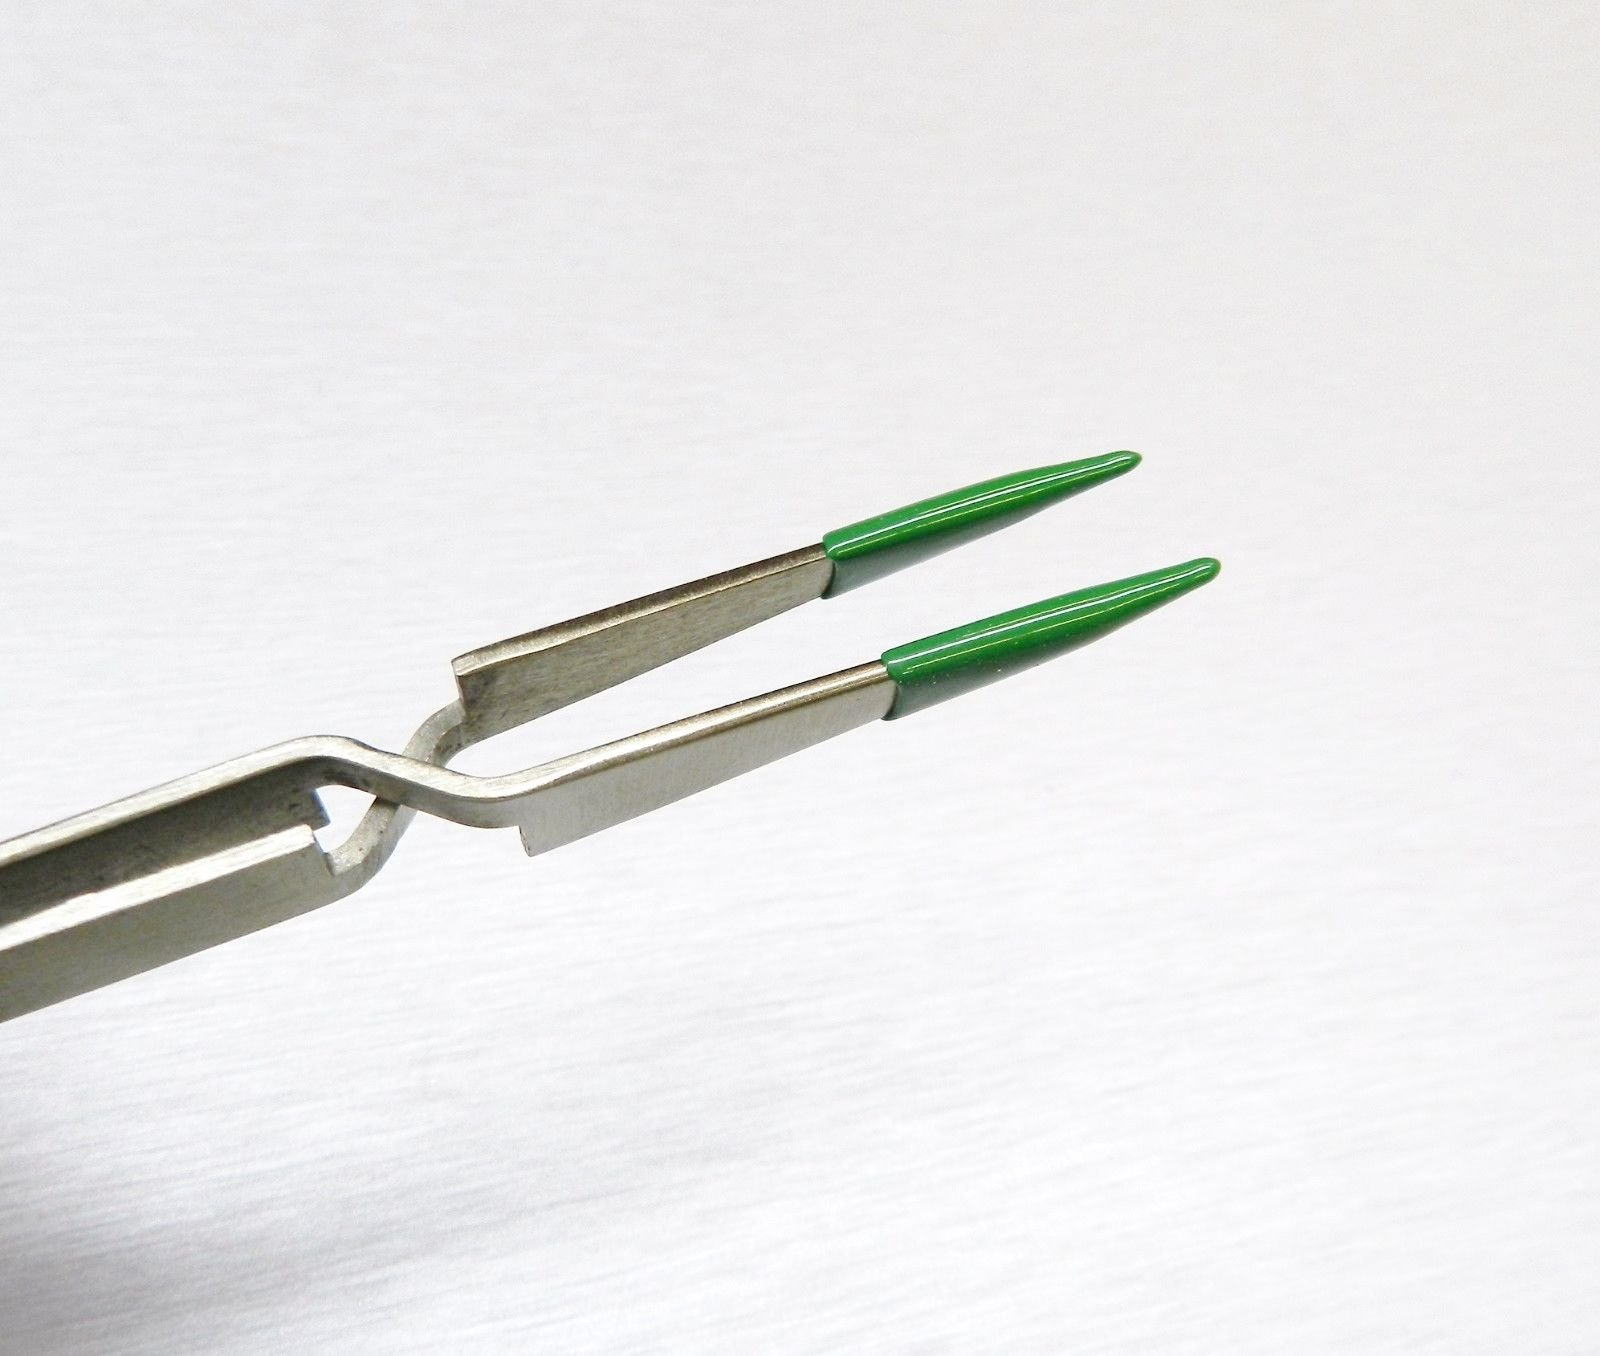 CROSS LOCK TWEEZERS LOCKING PVC COATED TIPS SAFE RUBBER TIP NON MARRING 4-3/4'' L (E2)